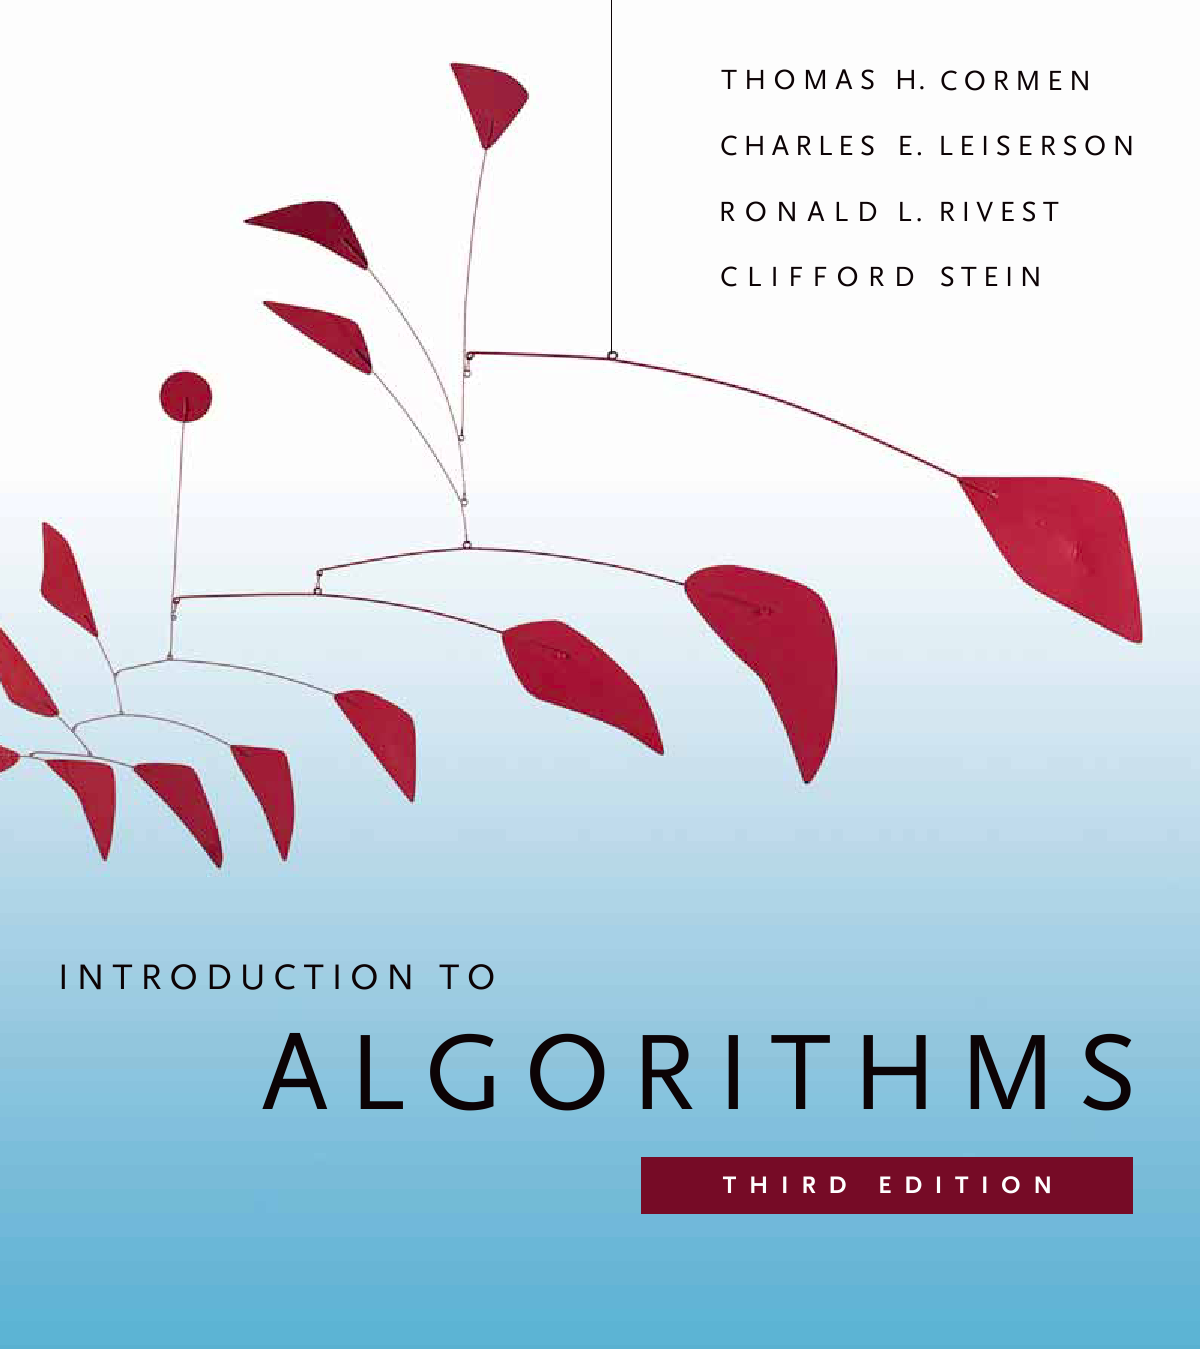 Introduction to Algorithms, 3rd Edition